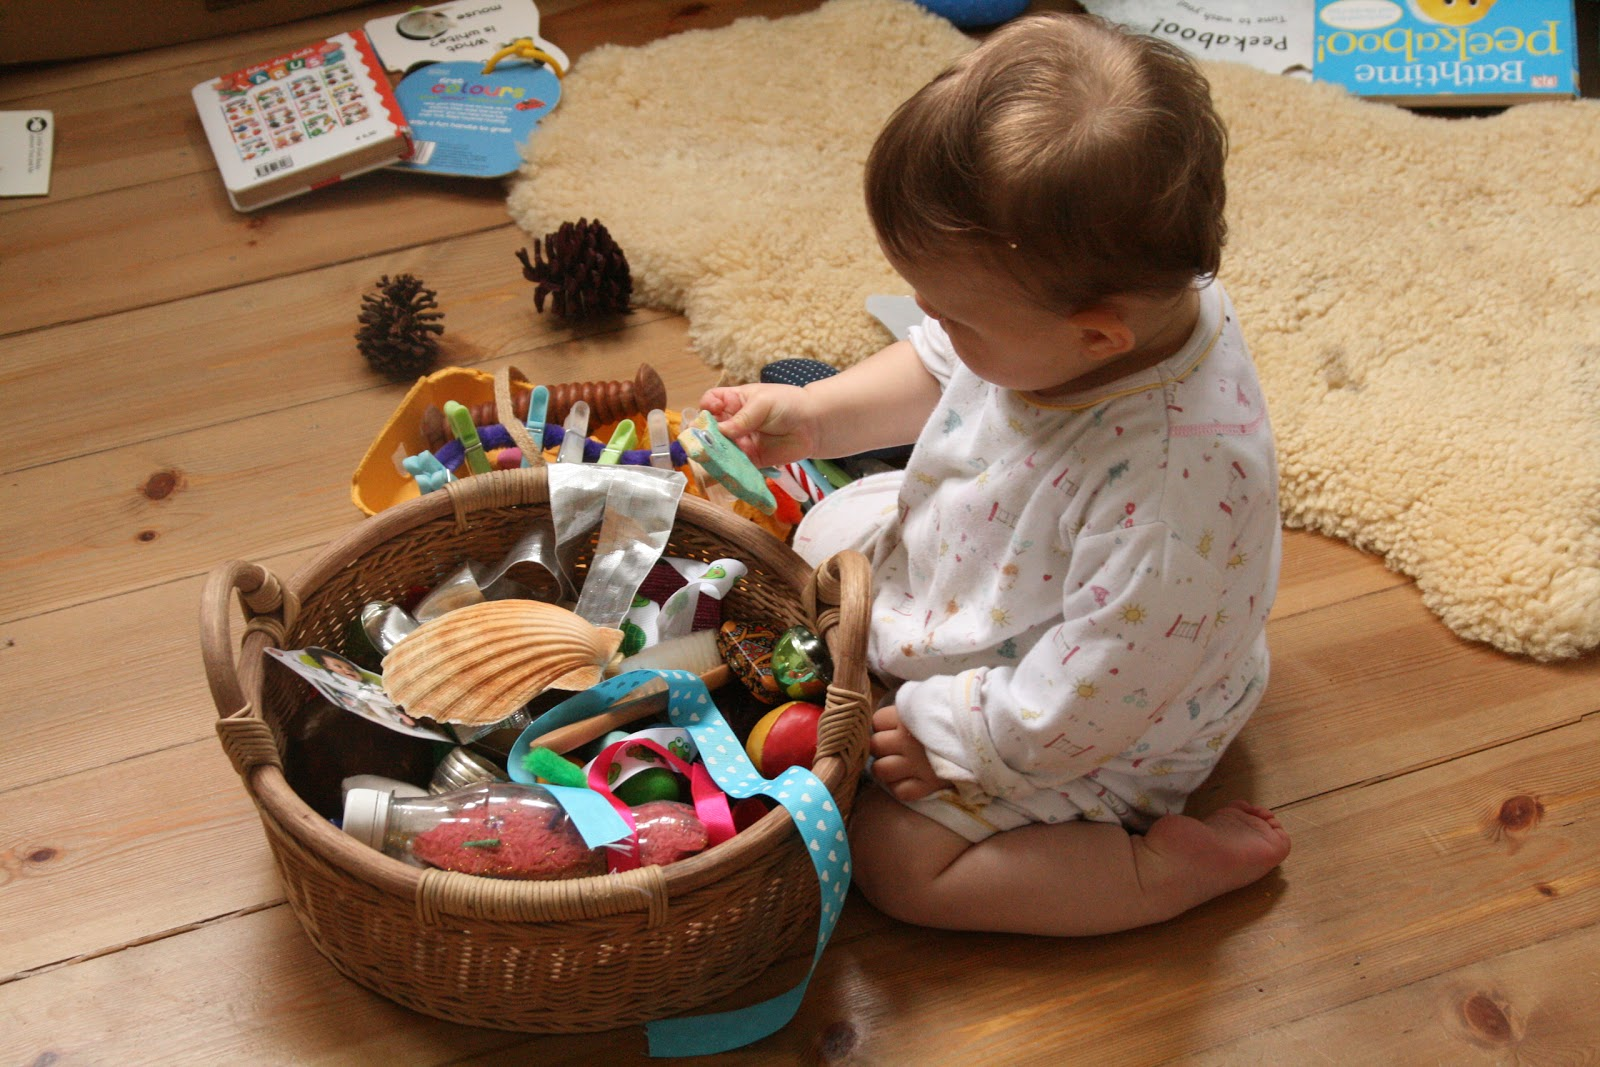 F D D D C Bee Bc Cf Baby Activities Sensory Activities Toddlers One Year Old in addition B Afb D A B Dd D B E further Toddler Playing With Abacus additionally A E A C A Fe A C moreover D Fc D Bcee Ff A Month Olds Rabbit. on educational stuff for 18 month olds